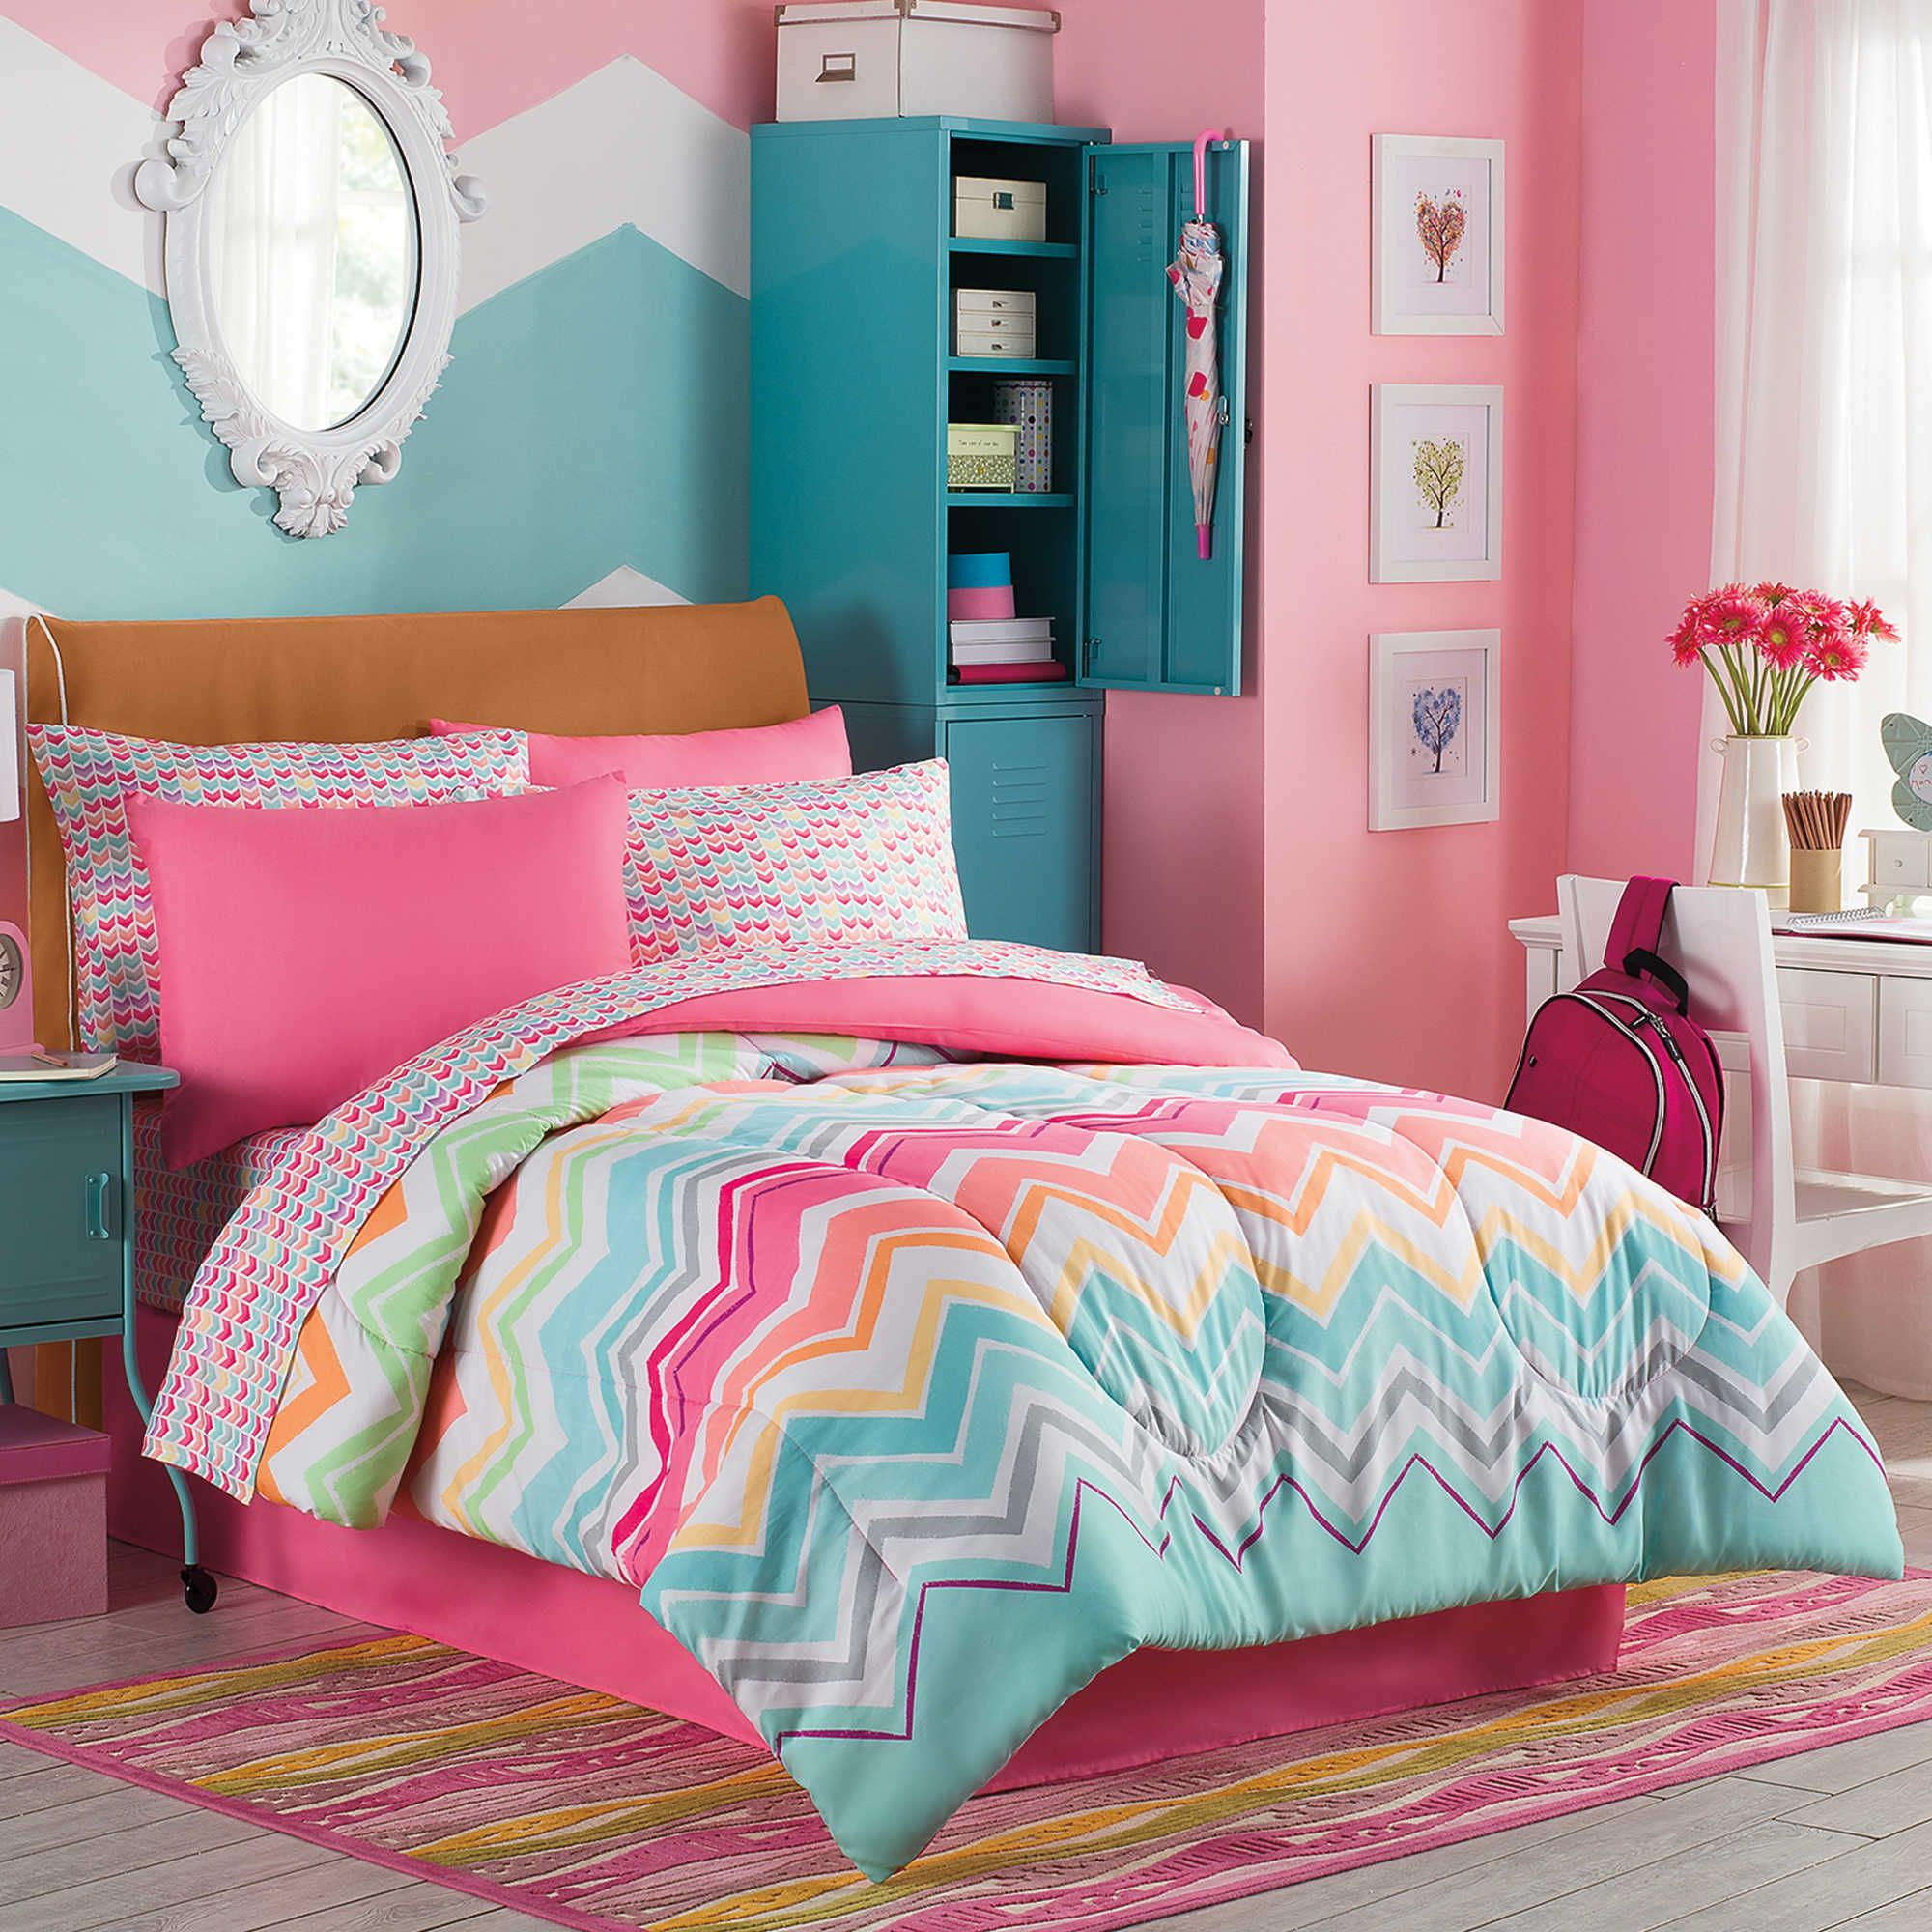 Girls Bedroom Decor And Ideas Kids Room Girls Room Turquoise